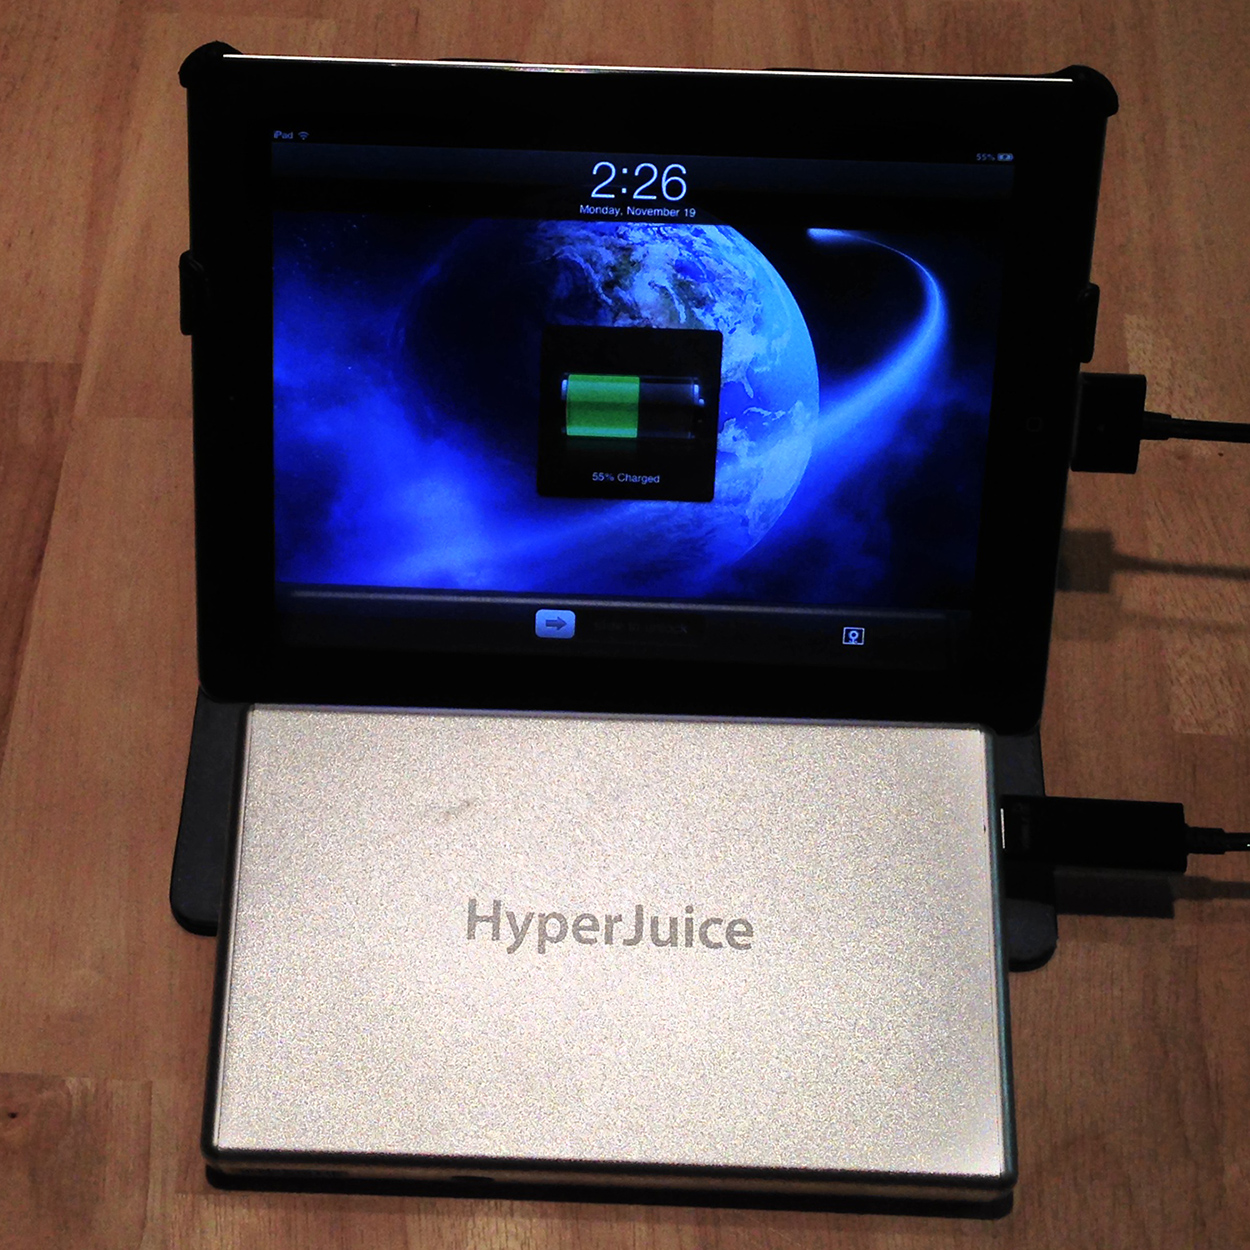 Supercharge Your iDevice With The HyperJuice 2 External Battery